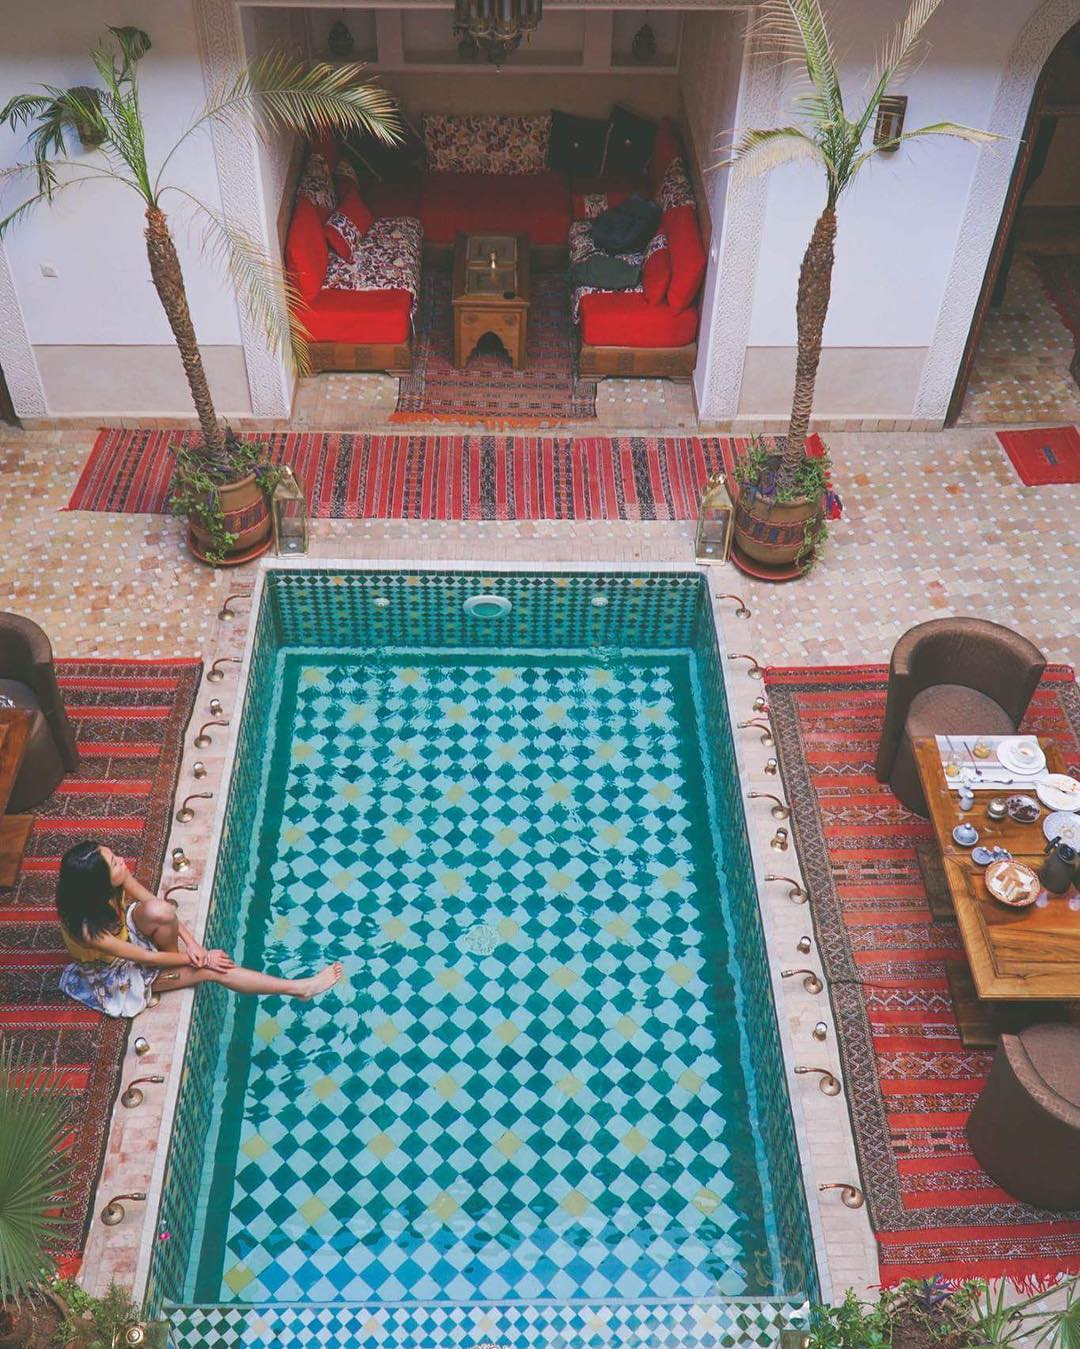 IMAGE: IG user @rayraywanders / POST: Daydreaming by the pool.. thank you Riad @melhoun for one of the most wonderful stays! // PUBLISHED: 12.2.16